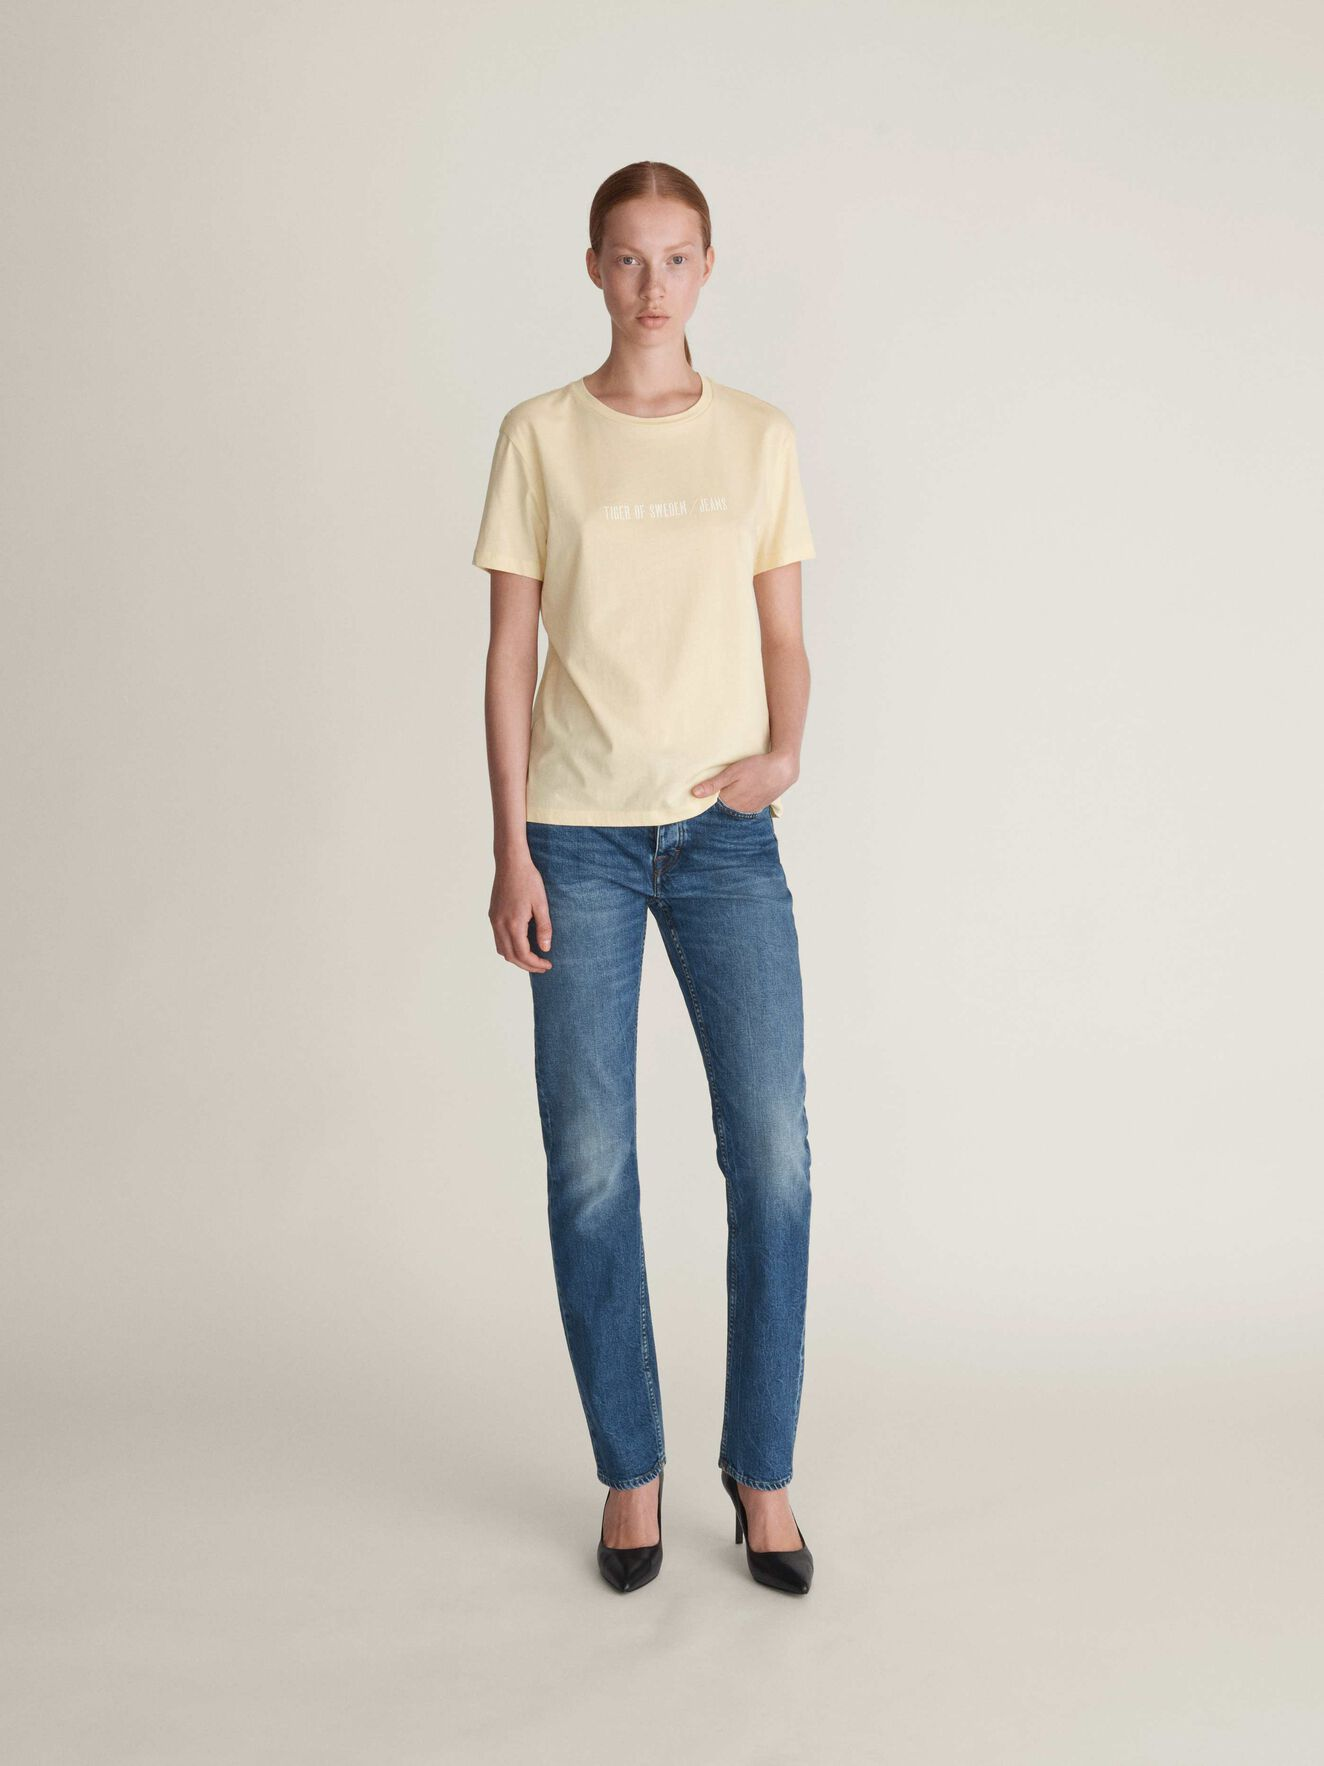 Dawn Pr T-Shirt in Curd from Tiger of Sweden